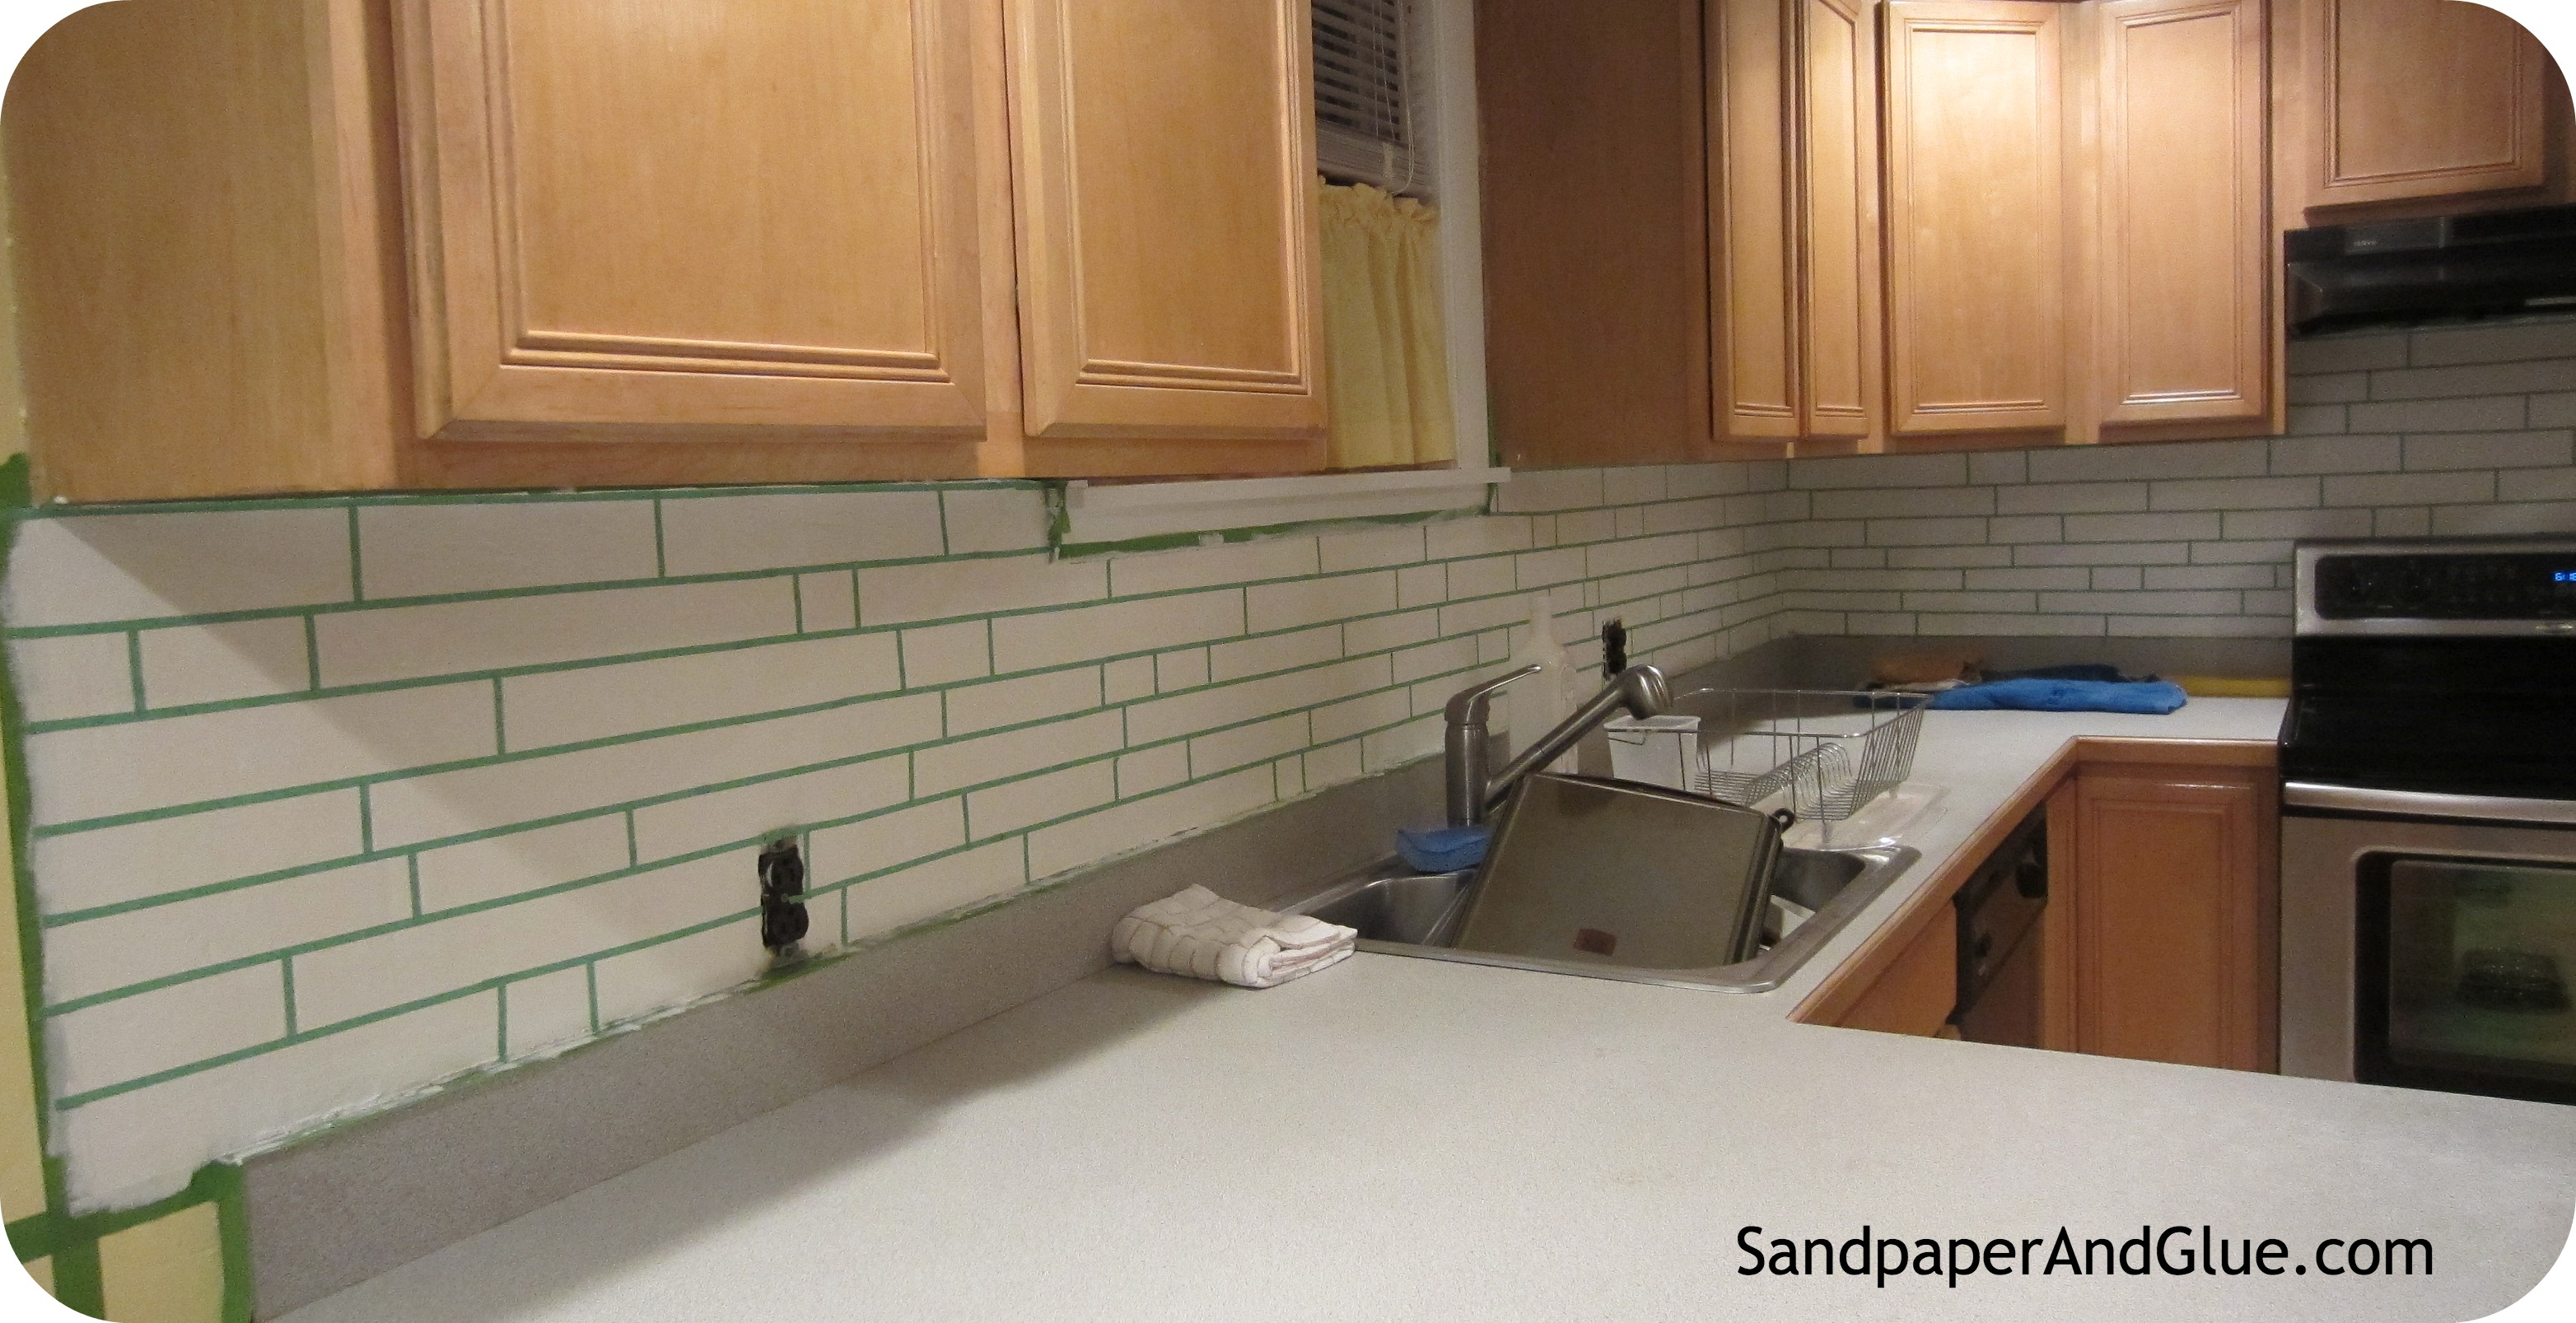 DIY Faux Tile Backsplash Stephanie Marchetti Sandpaper Glue a 3128x1607